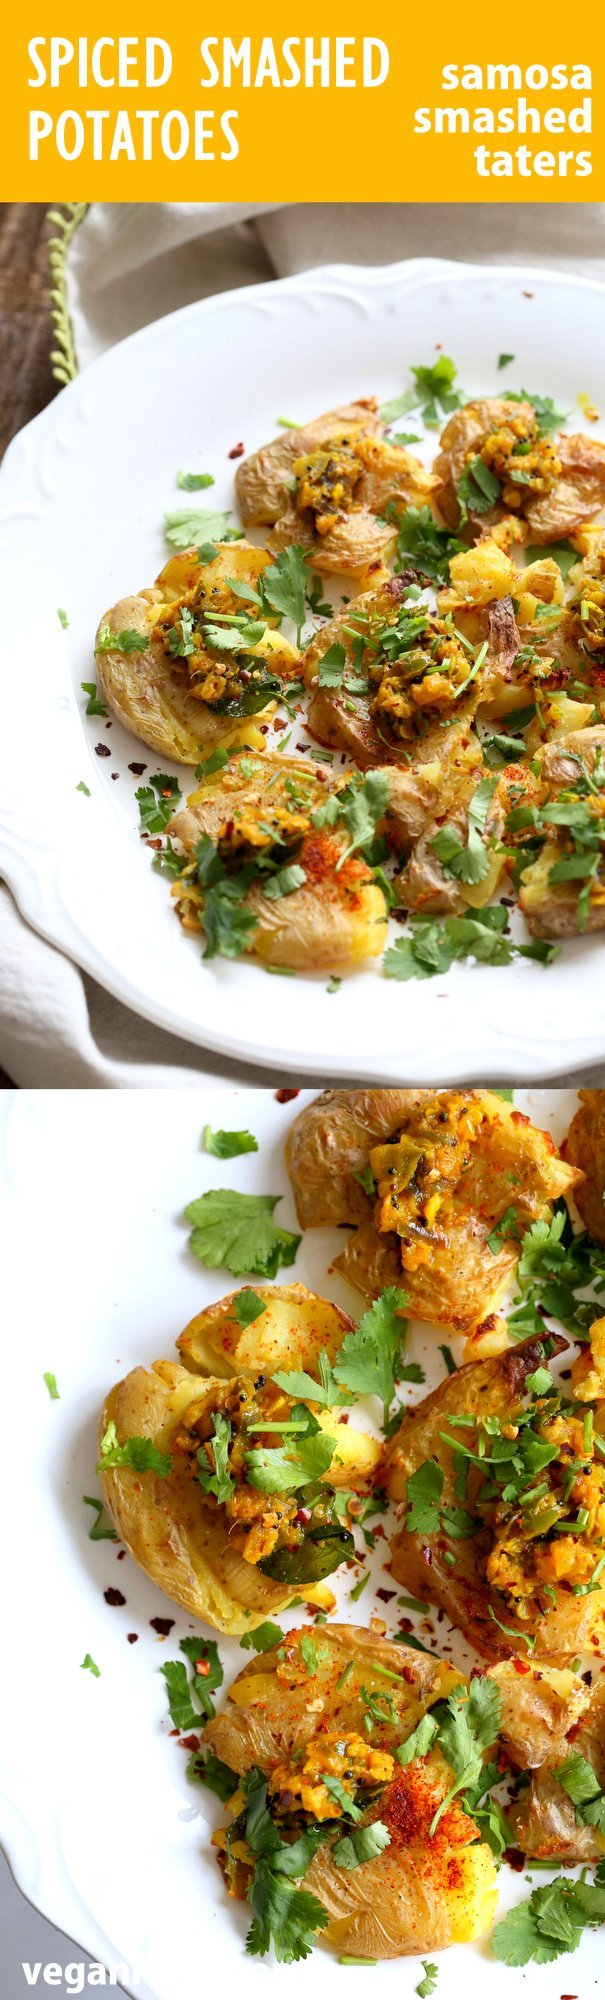 Indian Spiced Smashed Potatoes with Mustard Ginger Tempering. Bonda like Samosa is a spiced potato snack. These smashed potatoes are topped with Bonda style tempering of ginger, chile, turmeric and mustard seeds. Love Indian Snacks Like Samosa or Bonda? Then you will love these. All the flavor, half the work! #Vegan #Glutenfree #veganricha #nutfree #soyfree #Recipe | VeganRicha.com